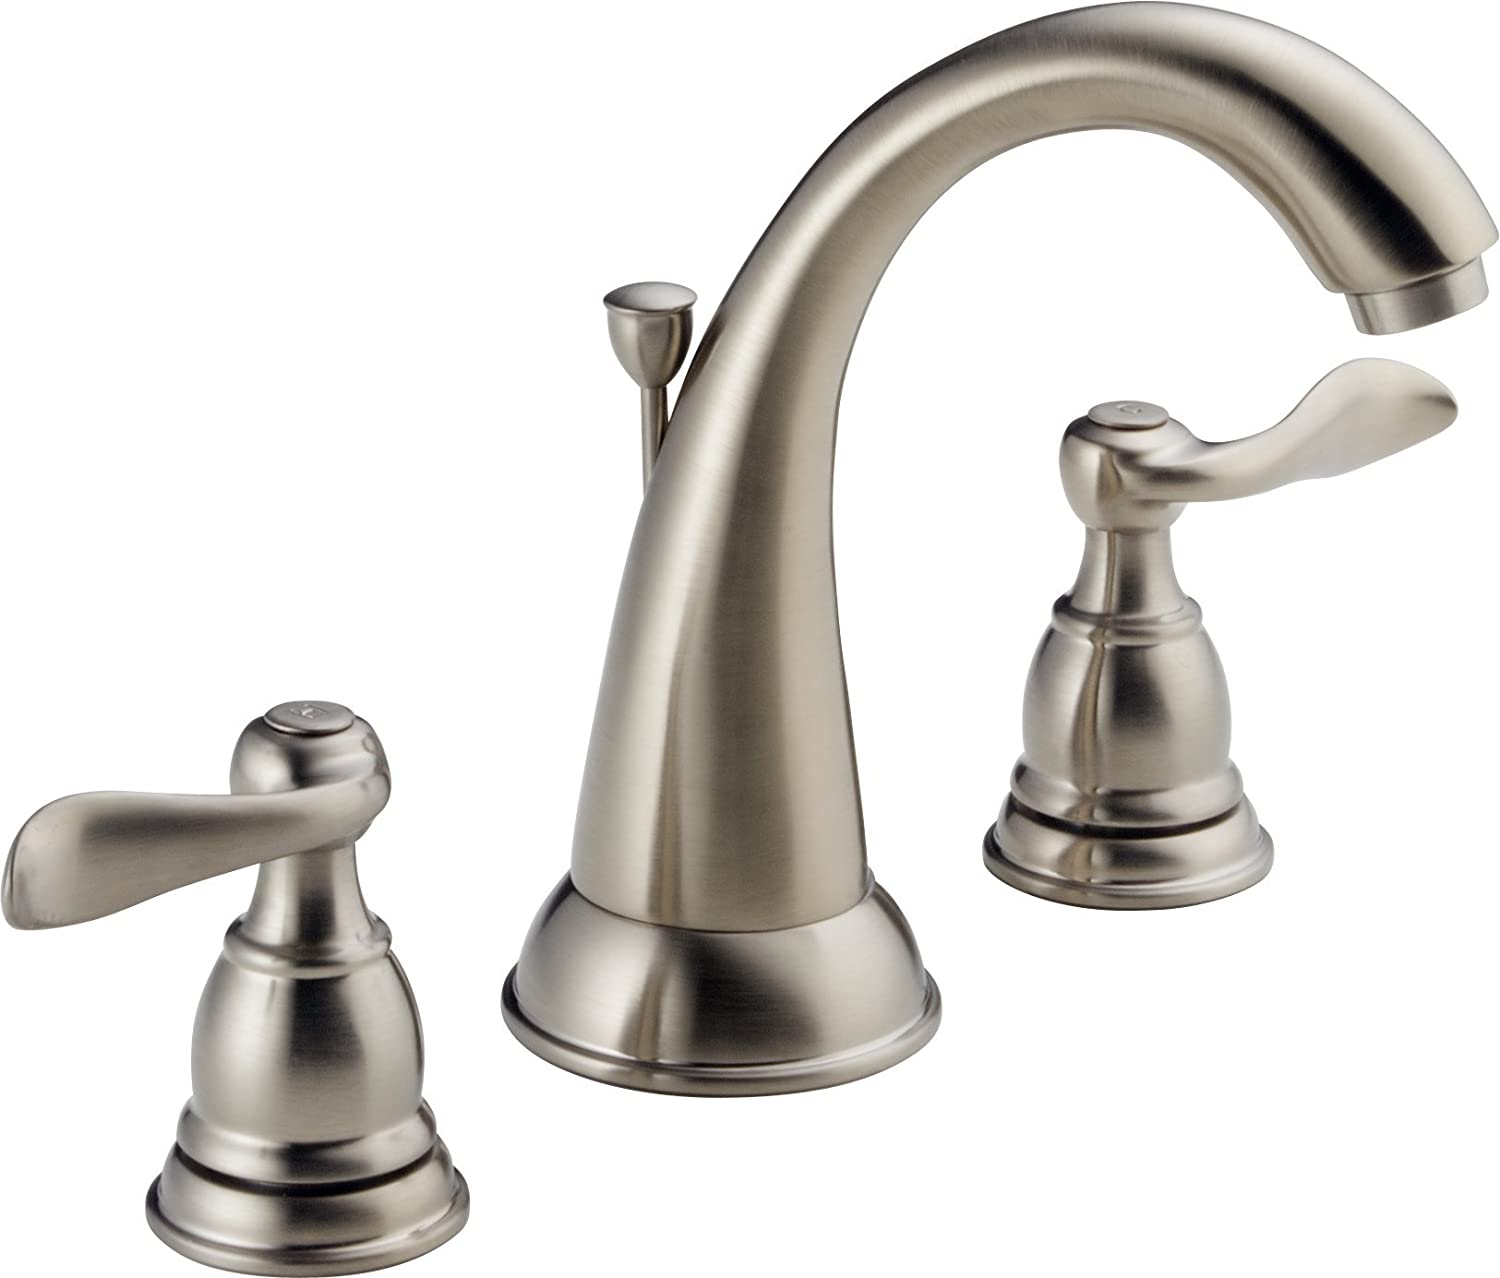 Delta Windemere 2-Handle Widespread Bathroom Faucet with Metal Drain ...